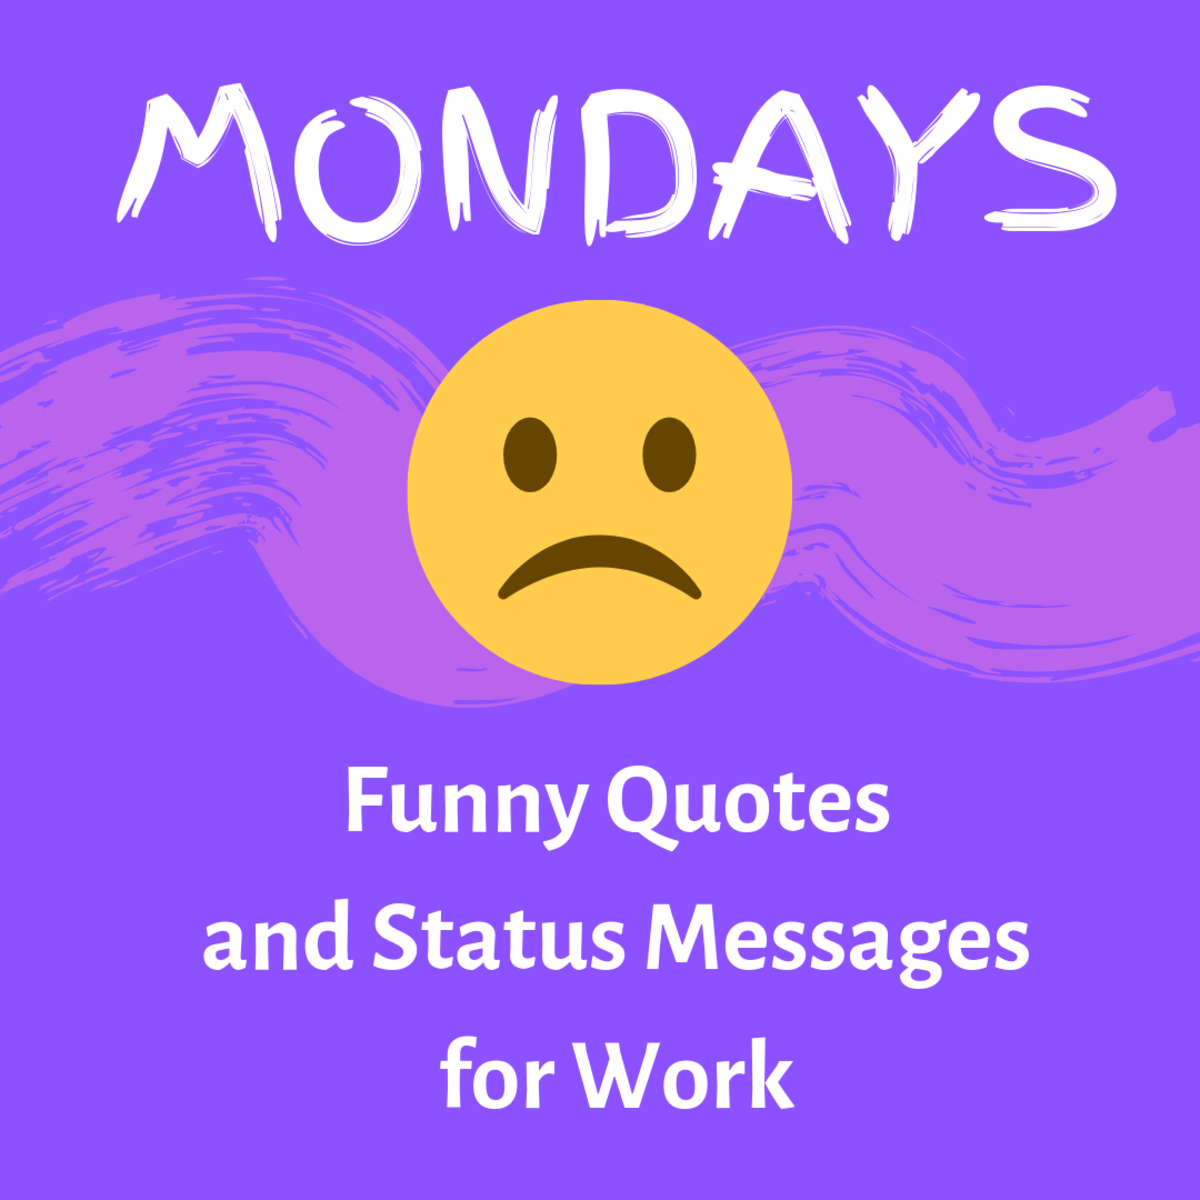 Funny Monday Quotes for Work: Statuses and Pictures | Holidappy